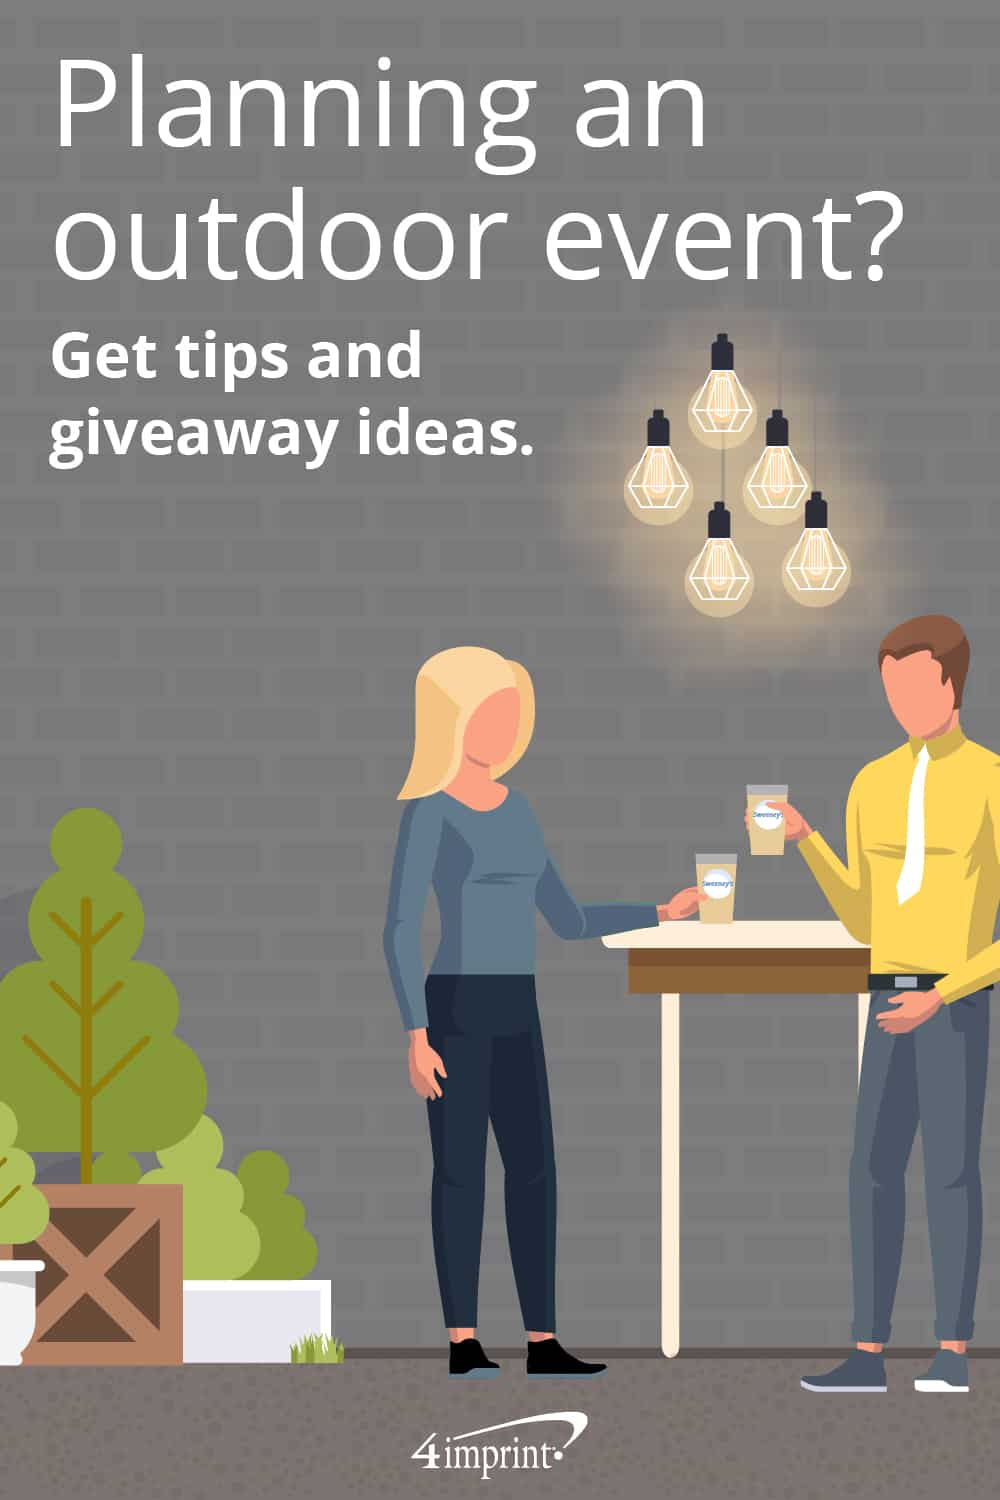 Planning an outdoor event? Get tips and giveaway ideas